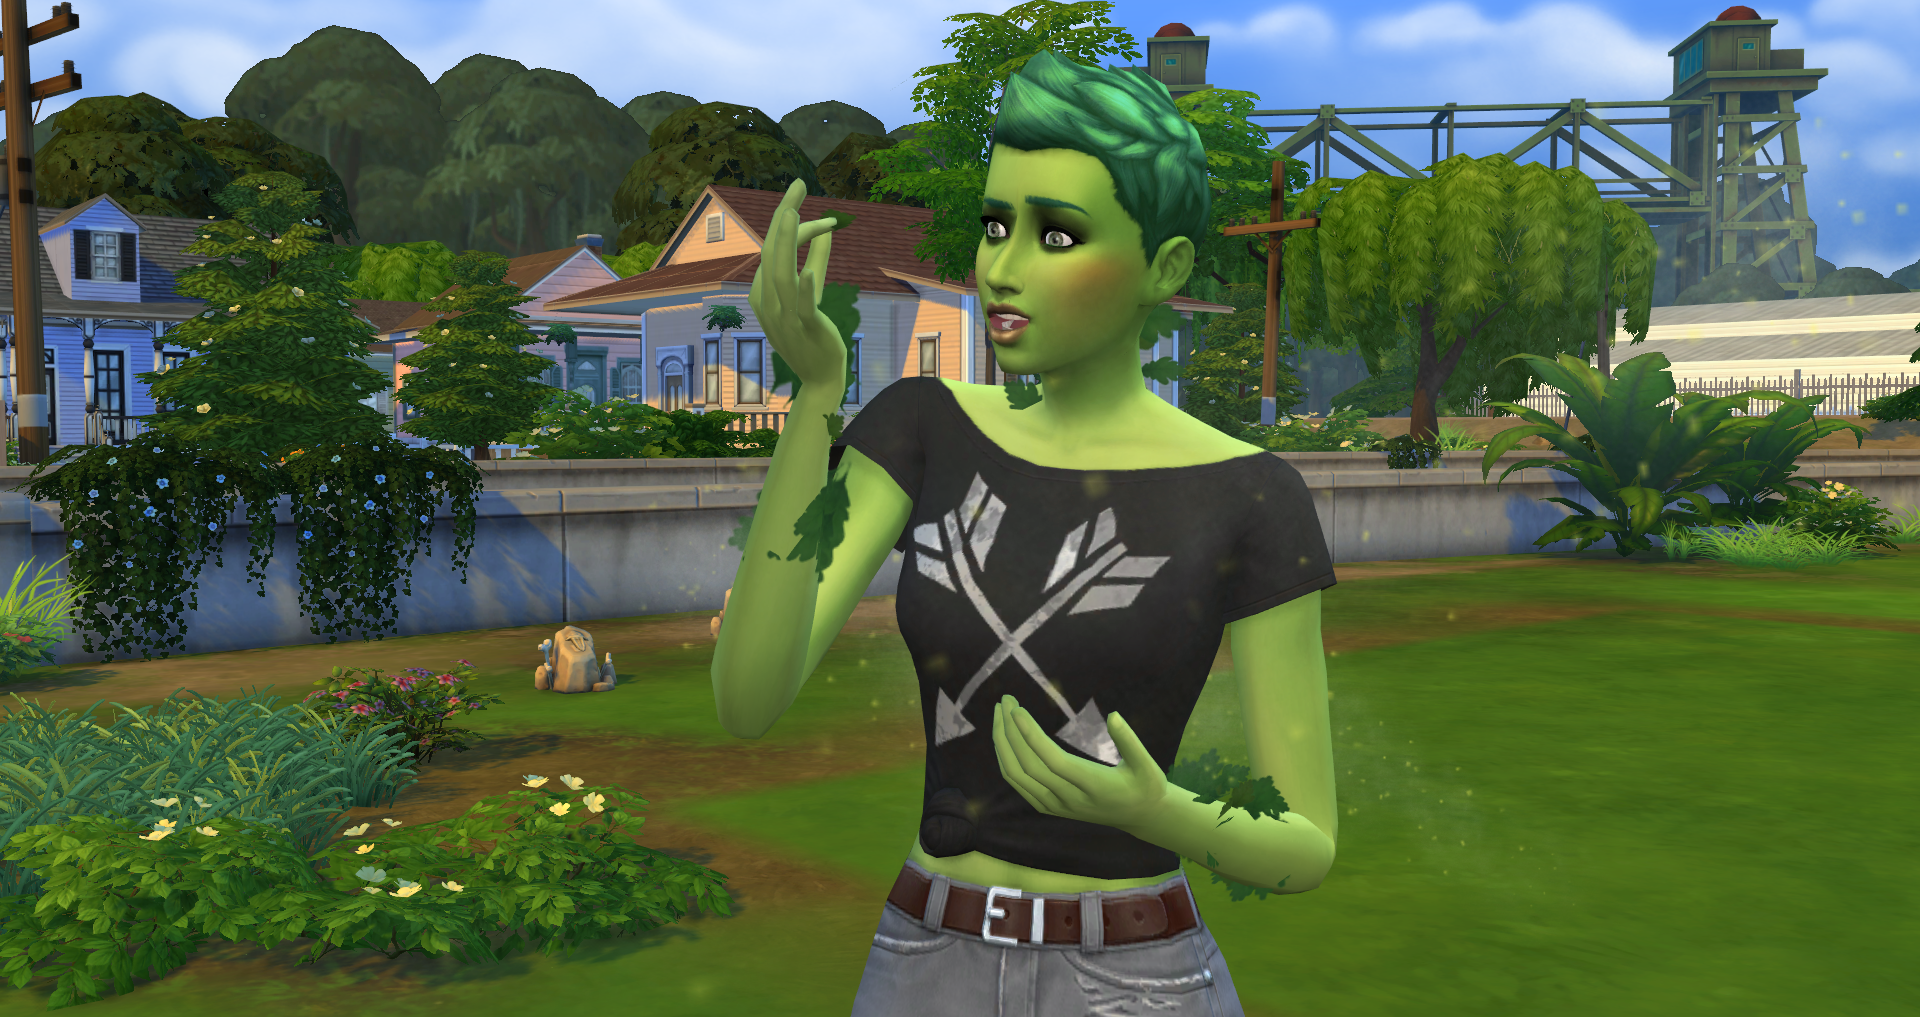 The Sims 4: How To Complete the PlantSim Challenge | SimsVIP